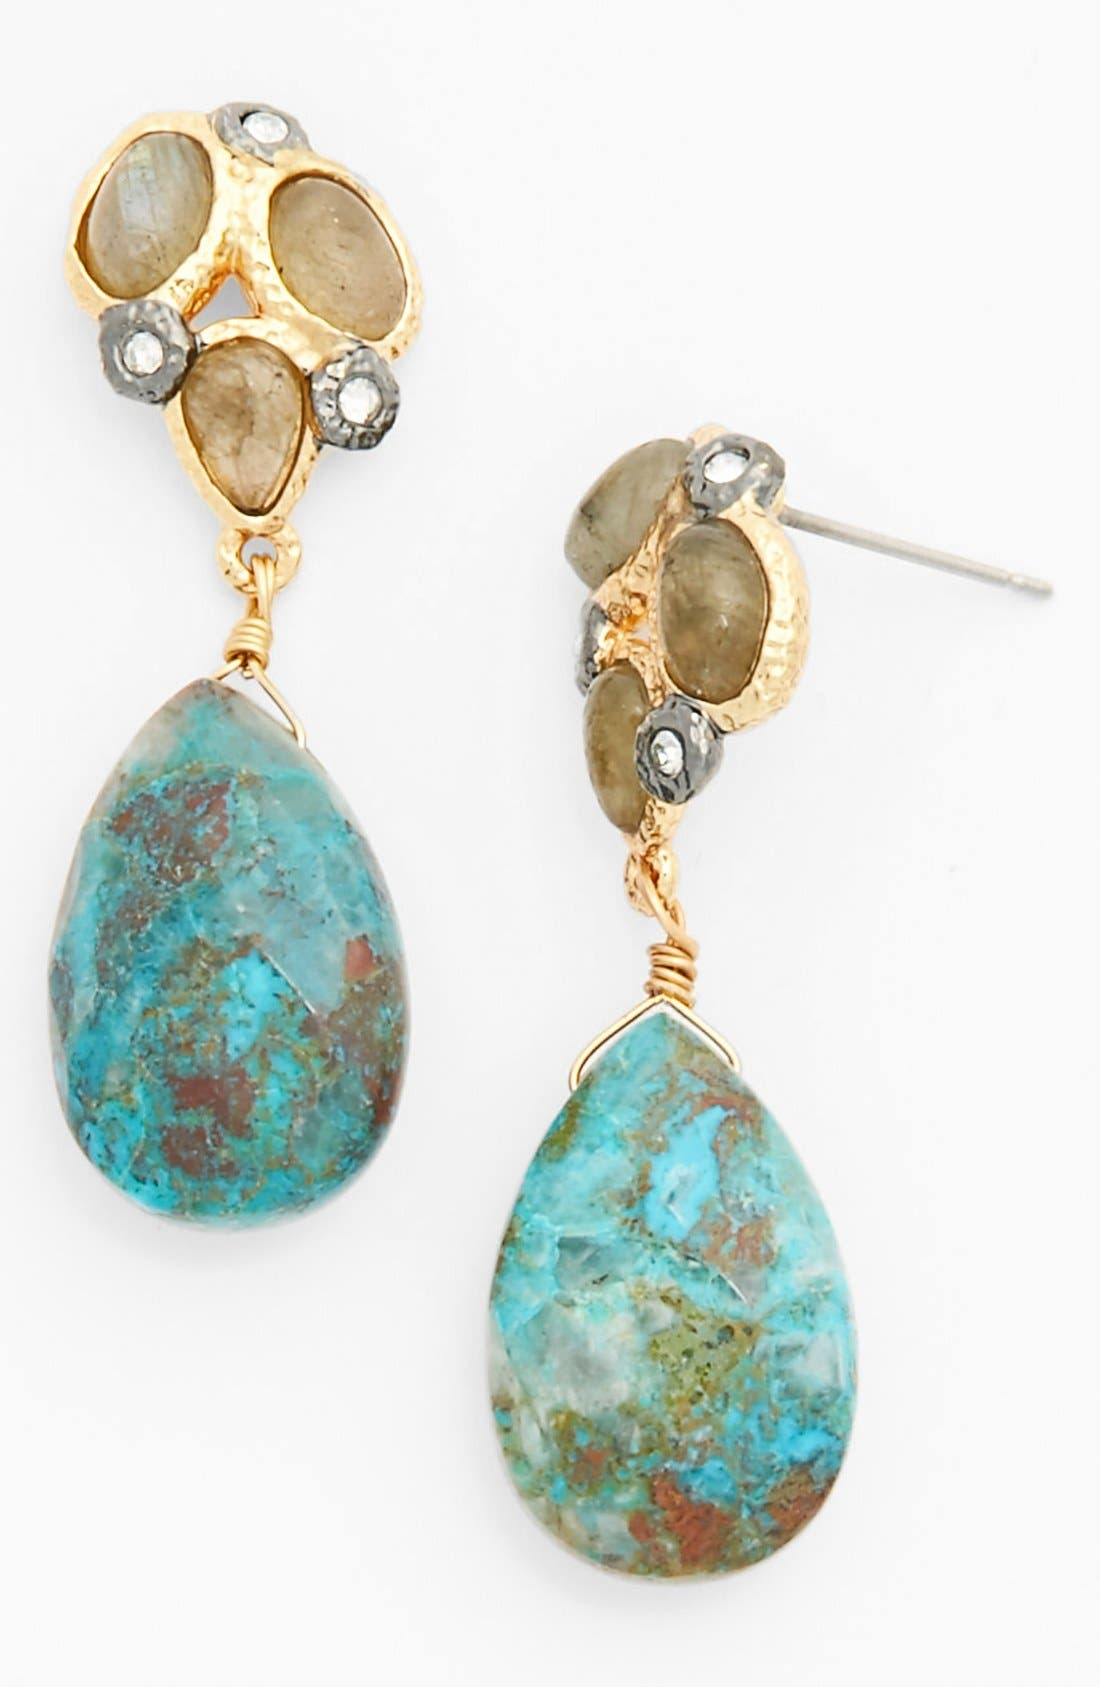 Alternate Image 1 Selected - Alexis Bittar 'Elements' Drop Earrings